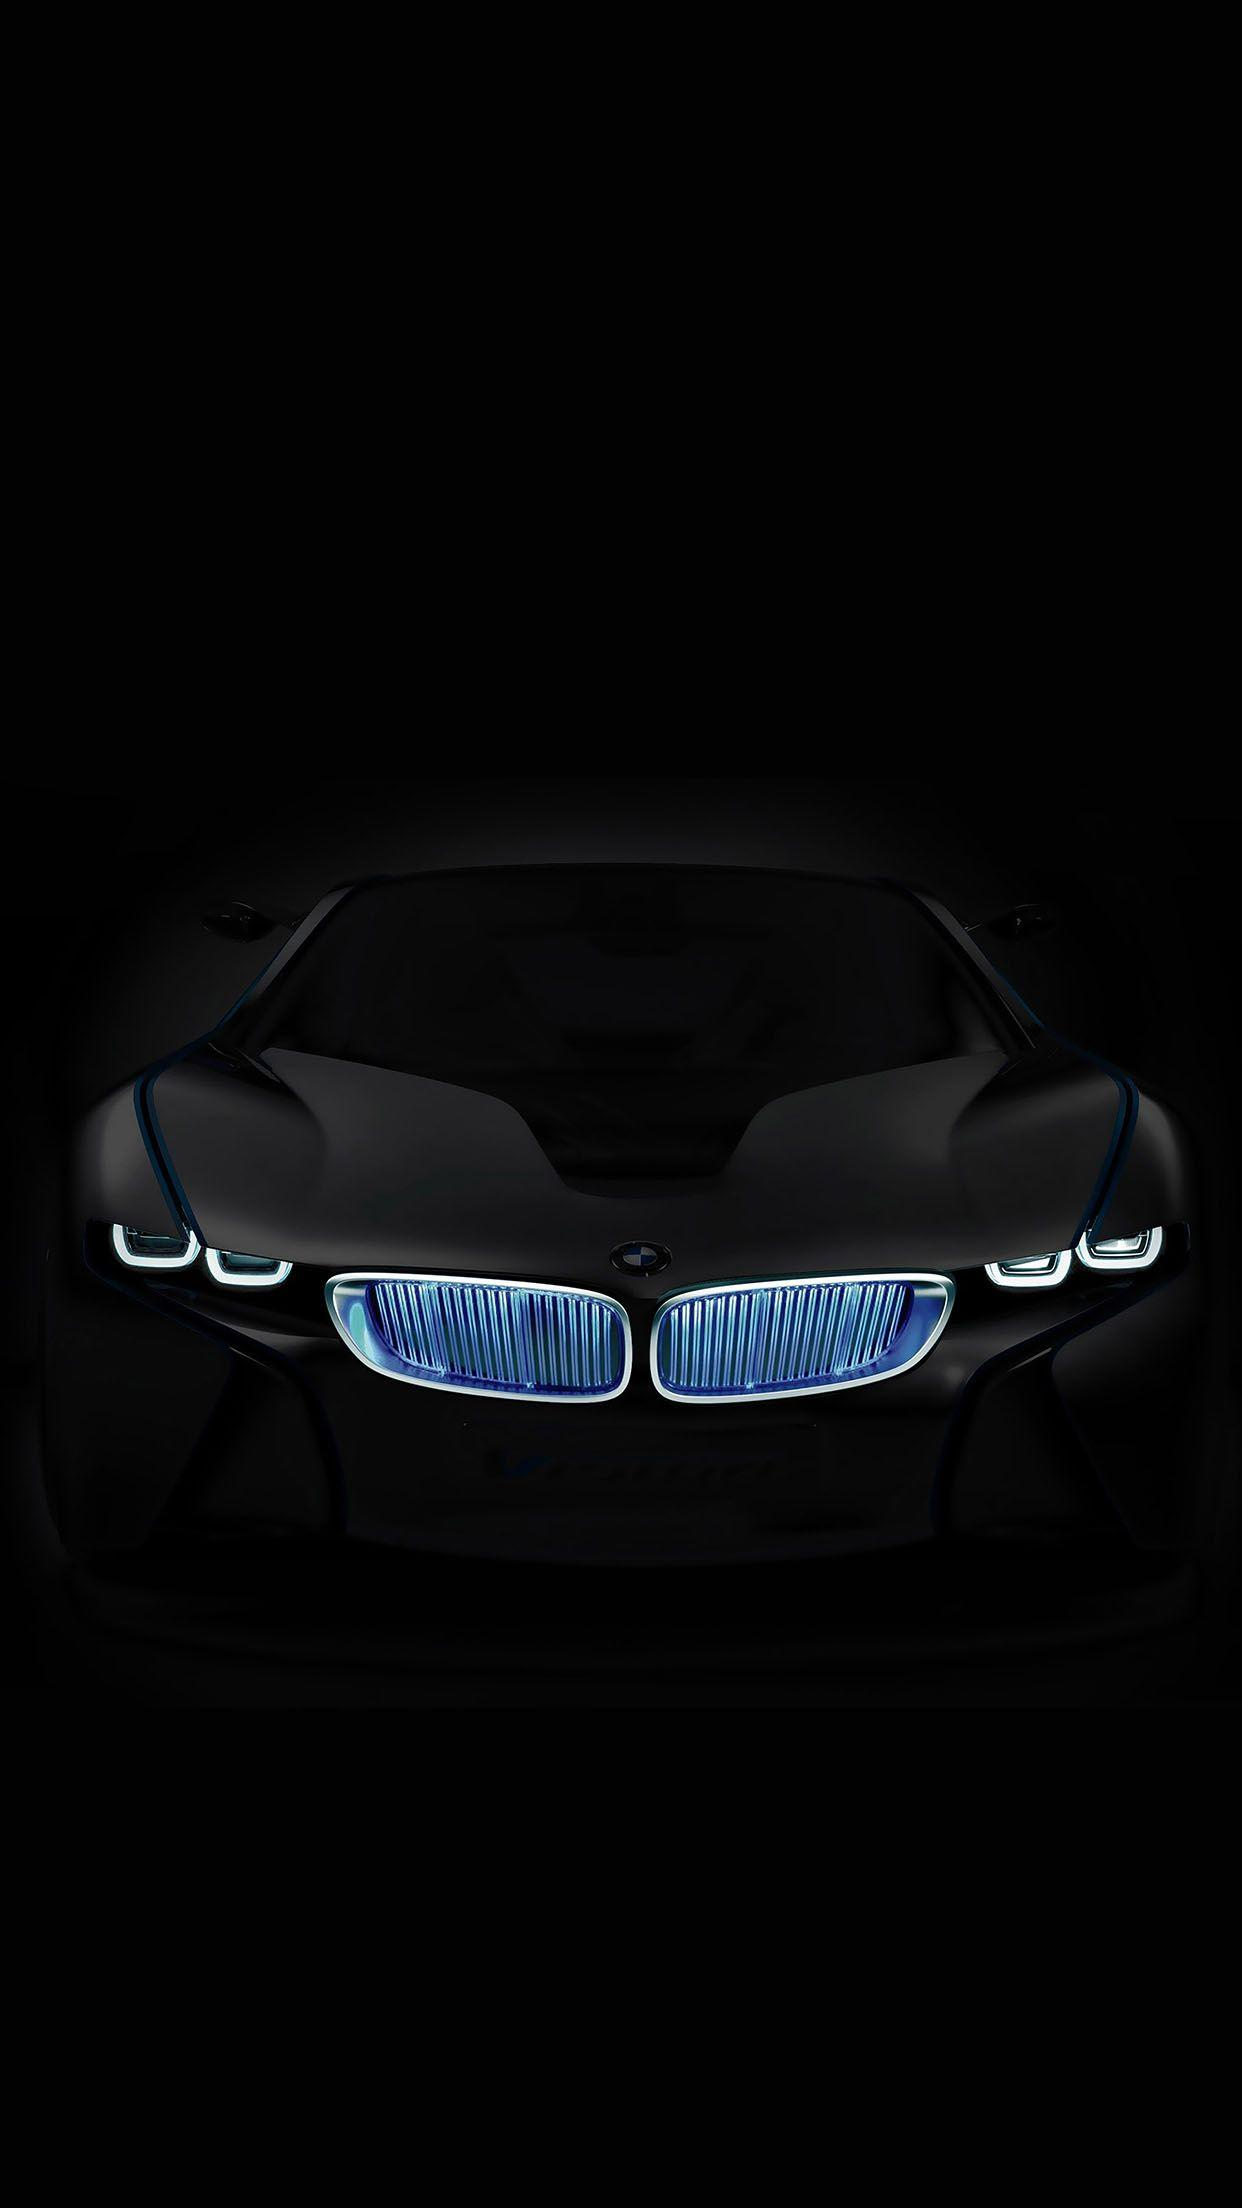 Hd Bmw Android Wallpapers Wallpaper Cave